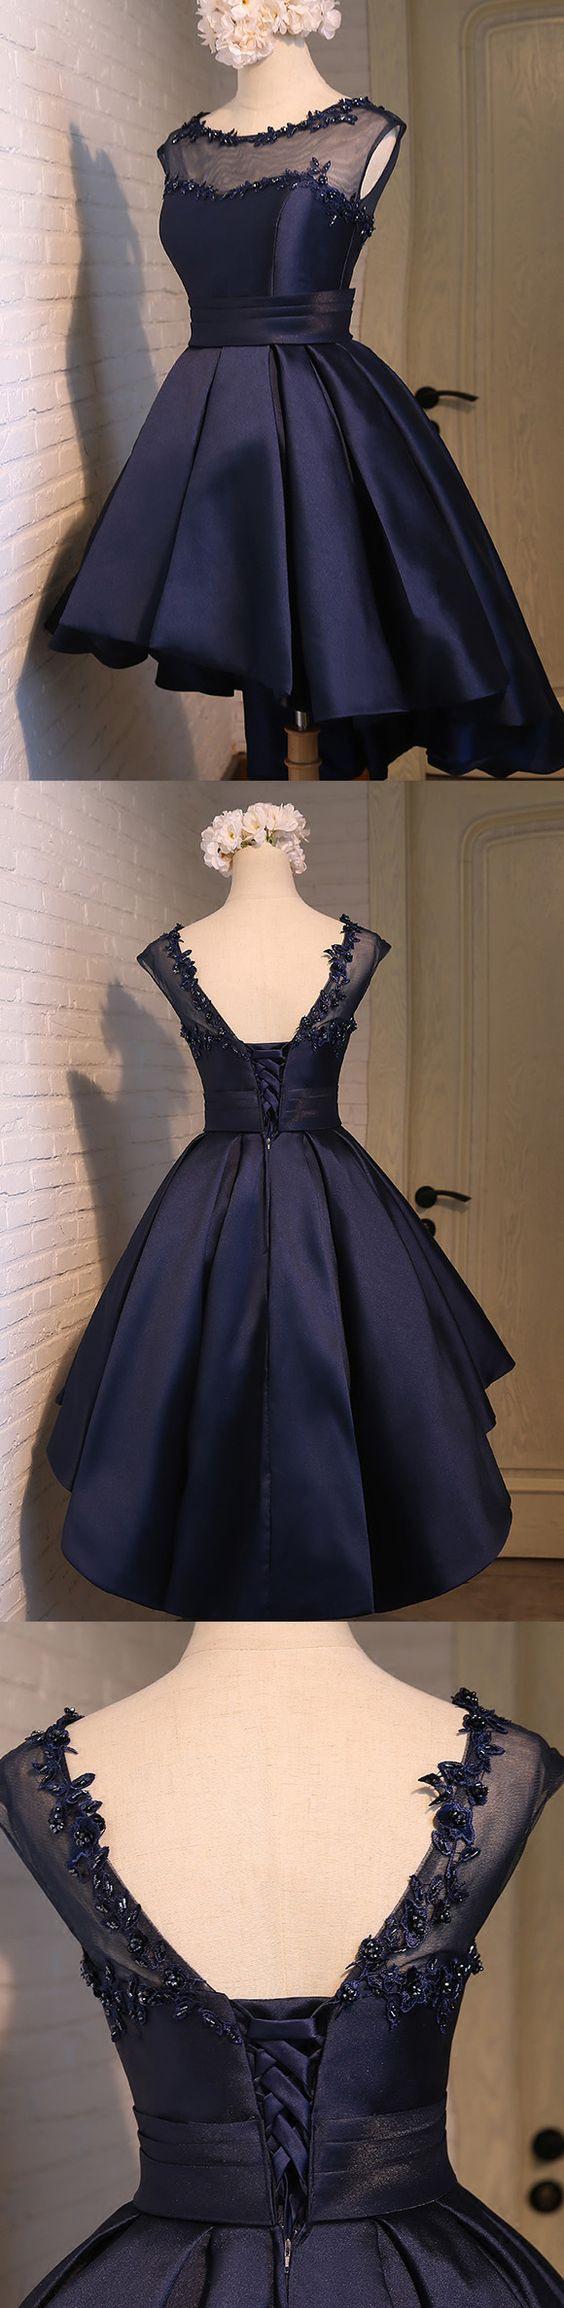 Charming Navy Blue Homecoming Dress,Lace Appliques Beaded Short Dress,Sleeveless Homecoming Gown